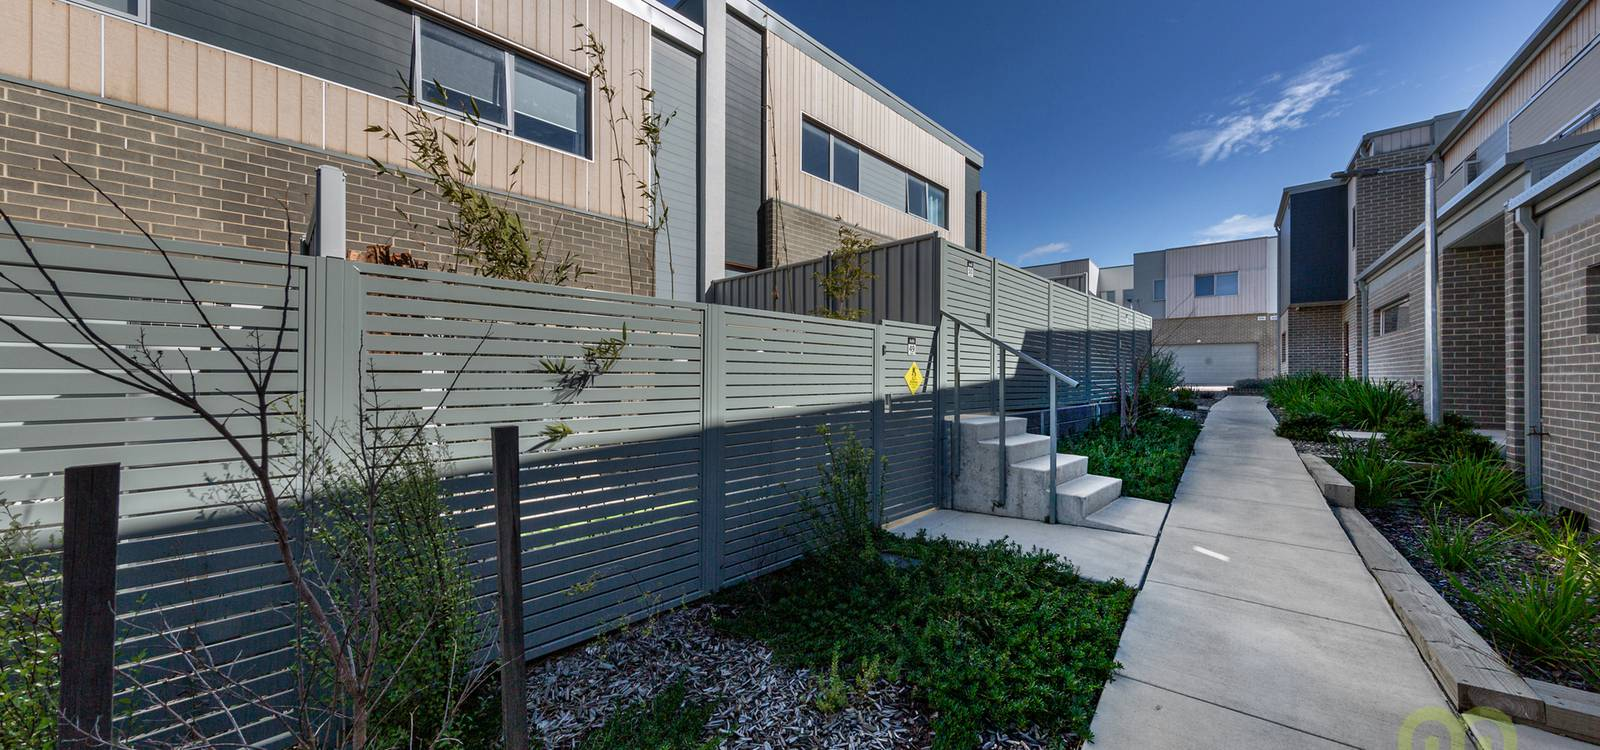 49/4 Pearlman Street COOMBS, ACT 2611 - photo 1